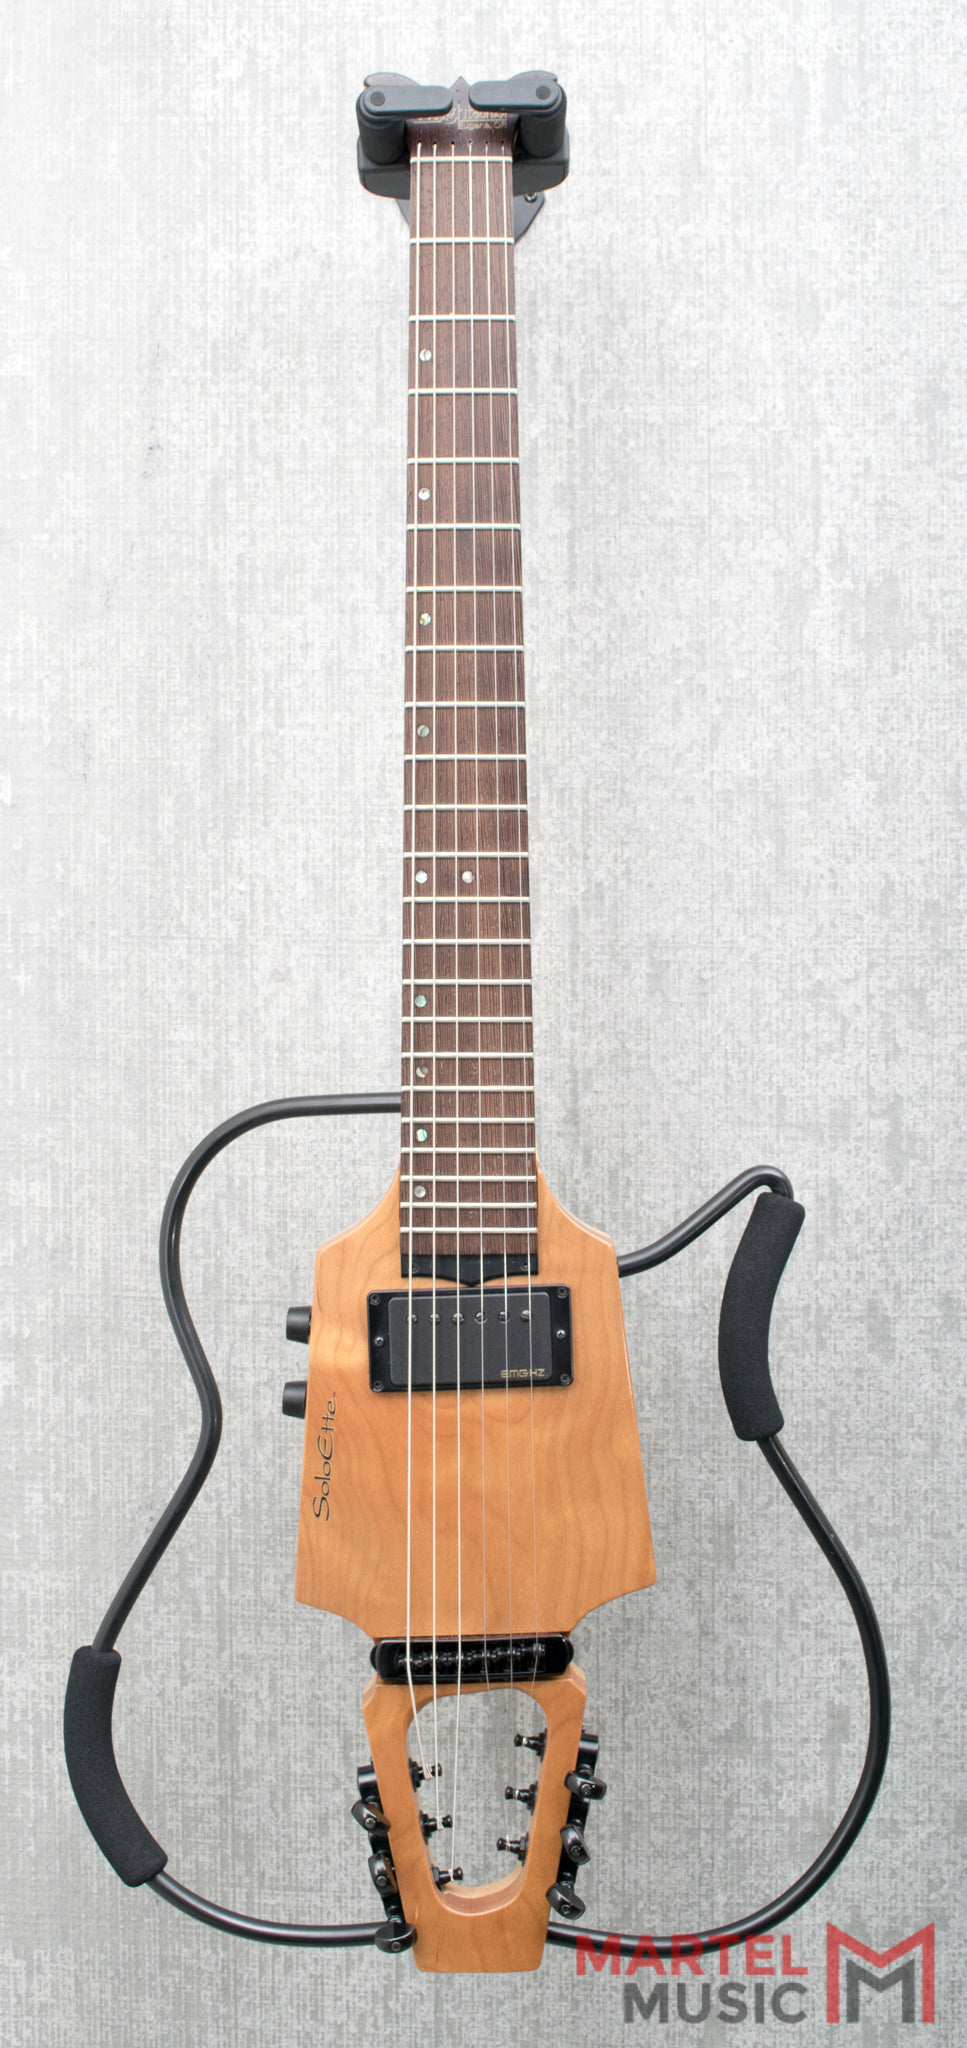 Wright Electric Travel Soloette Guitar